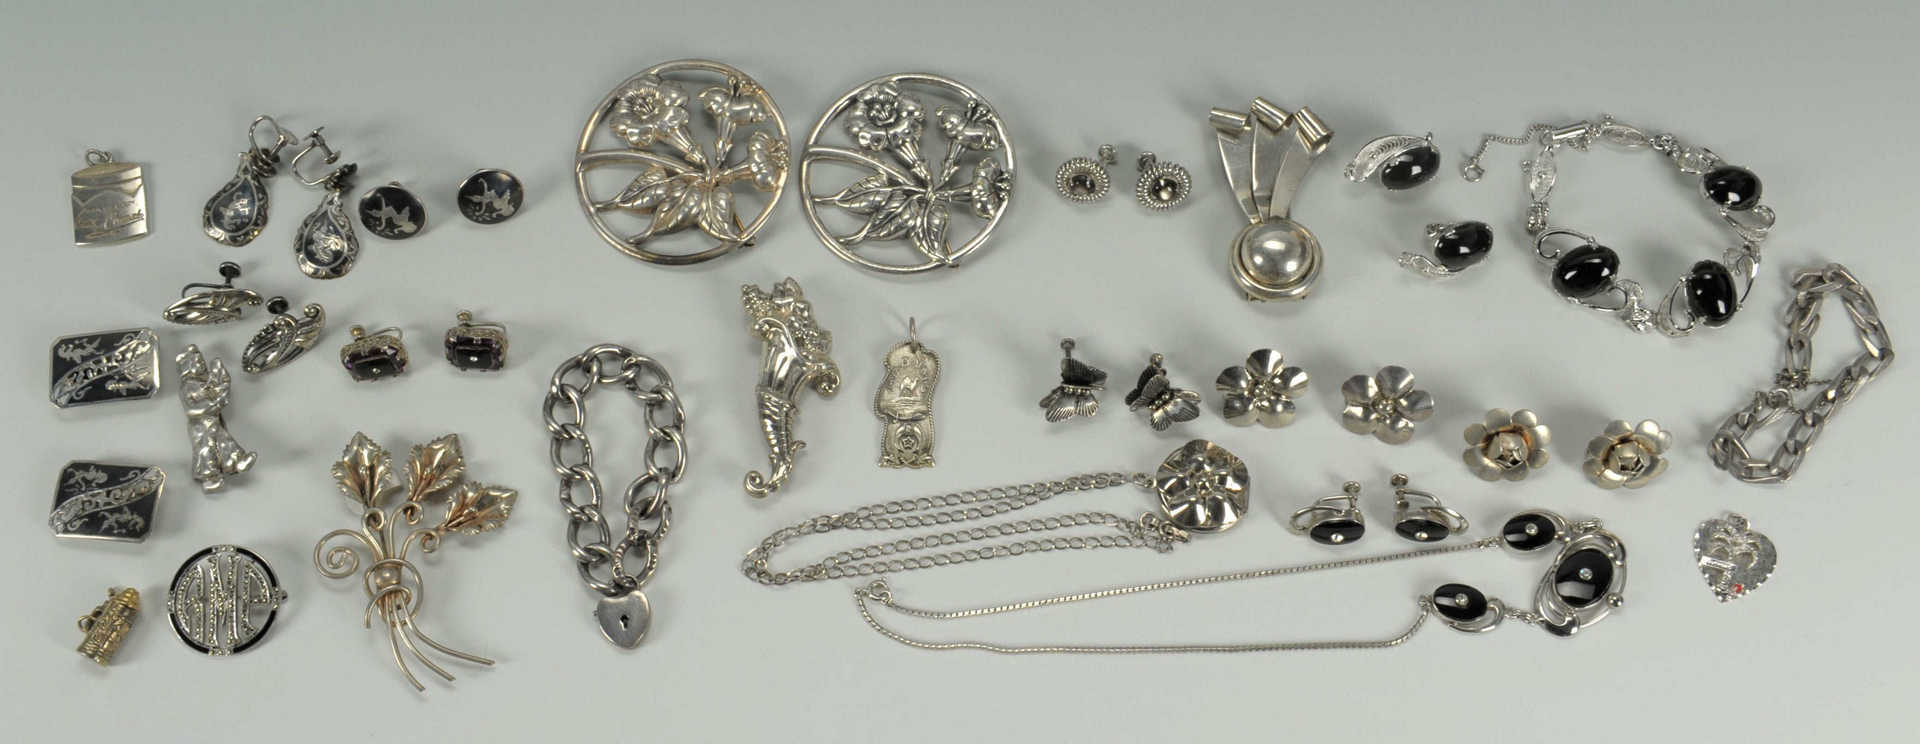 Lot 611: Large Group of Sterling and Costume Jewelry